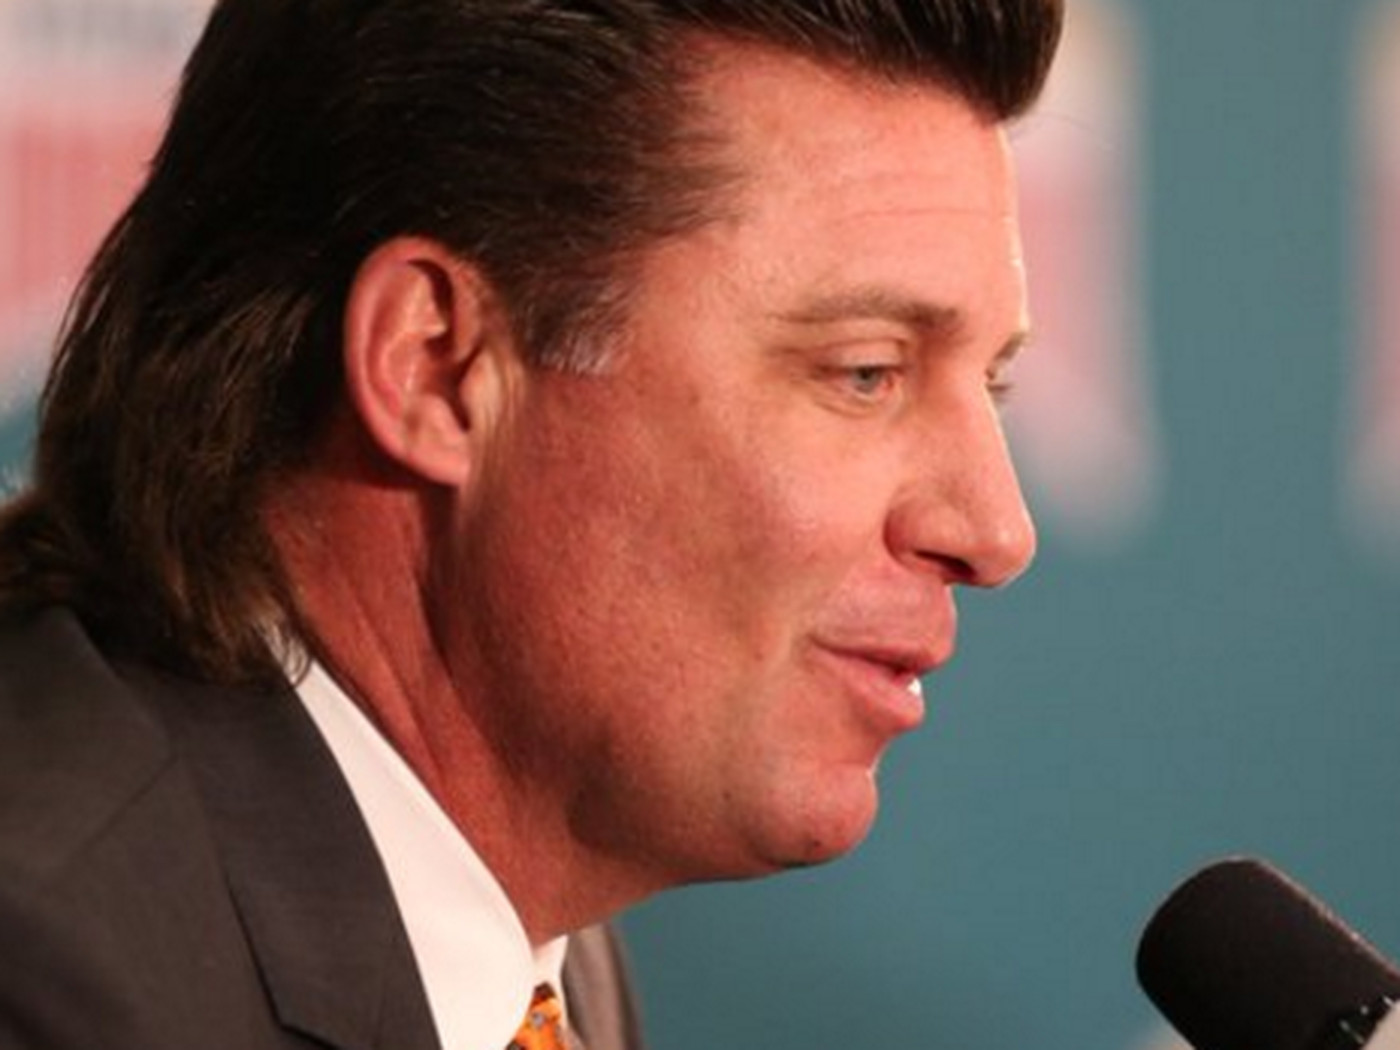 Oklahoma State S Mike Gundy Has A Mullet You Must Know These 7 Things About It Sbnation Com